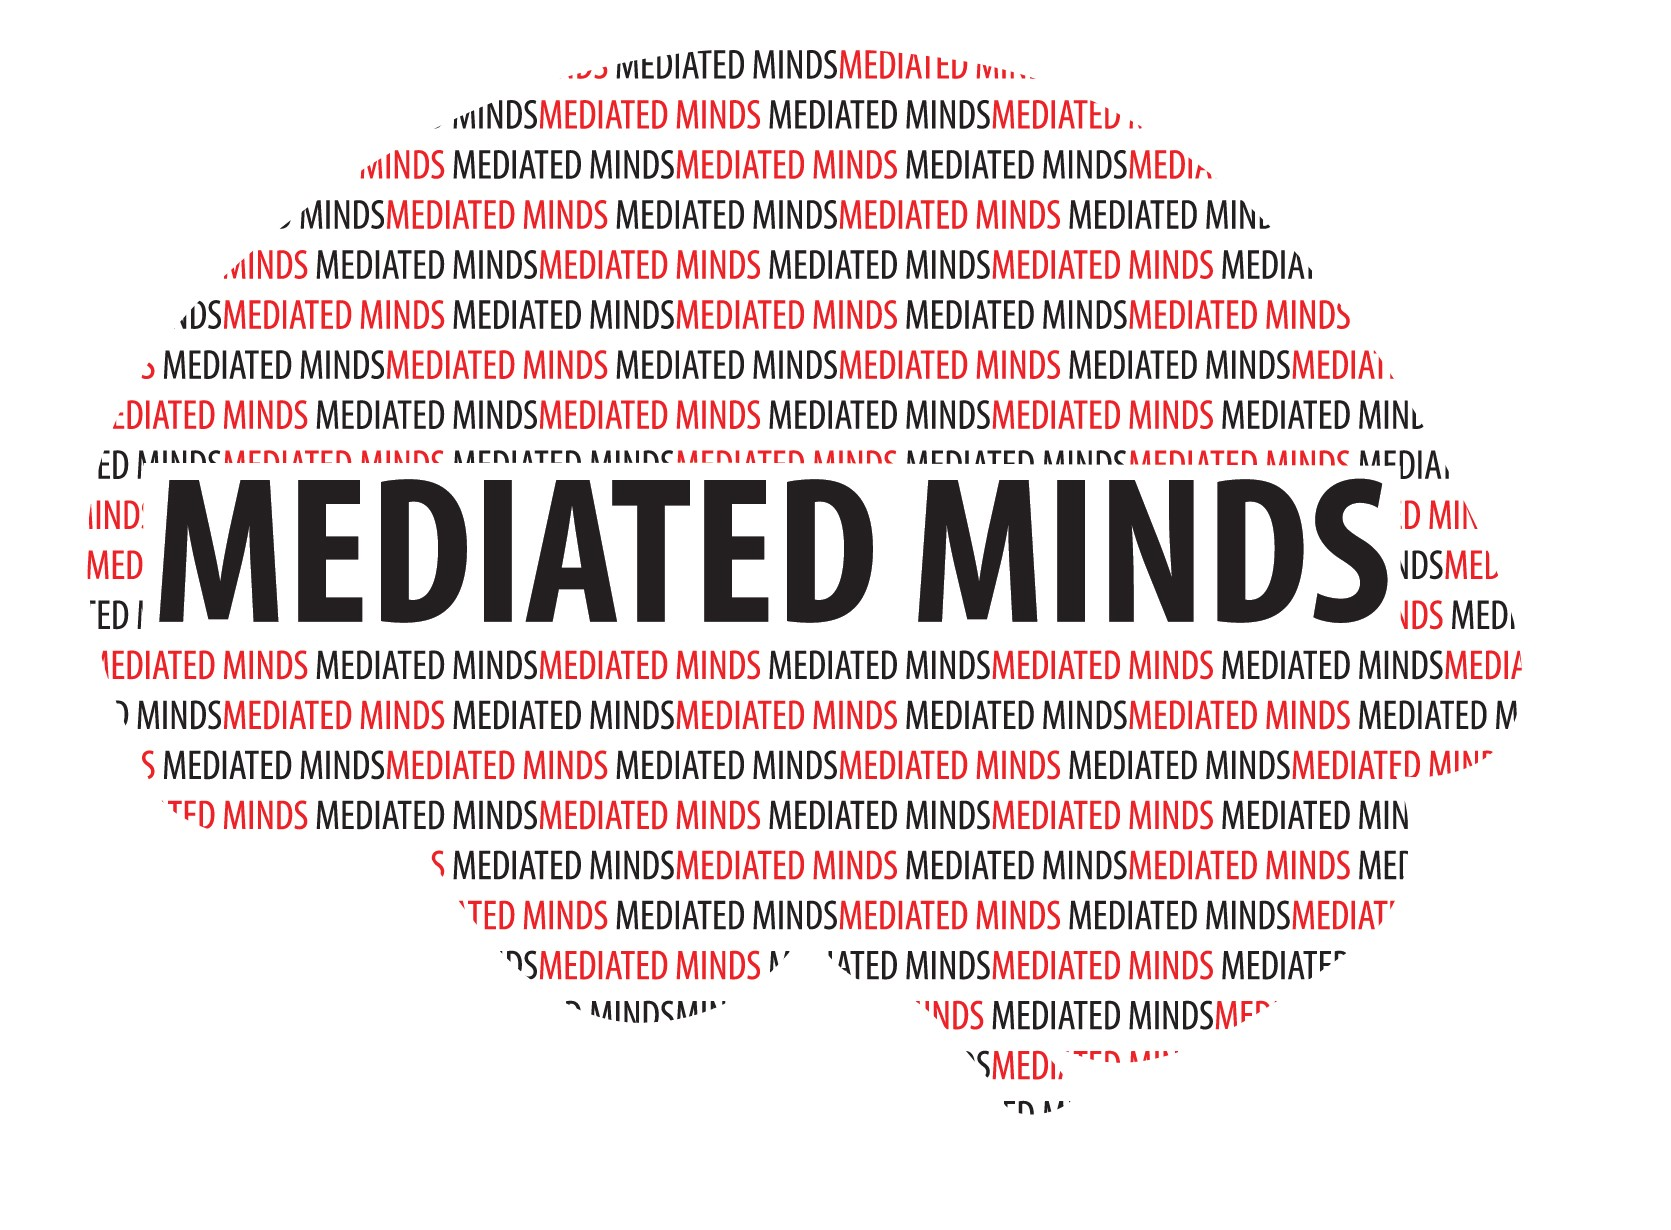 Mediated Minds